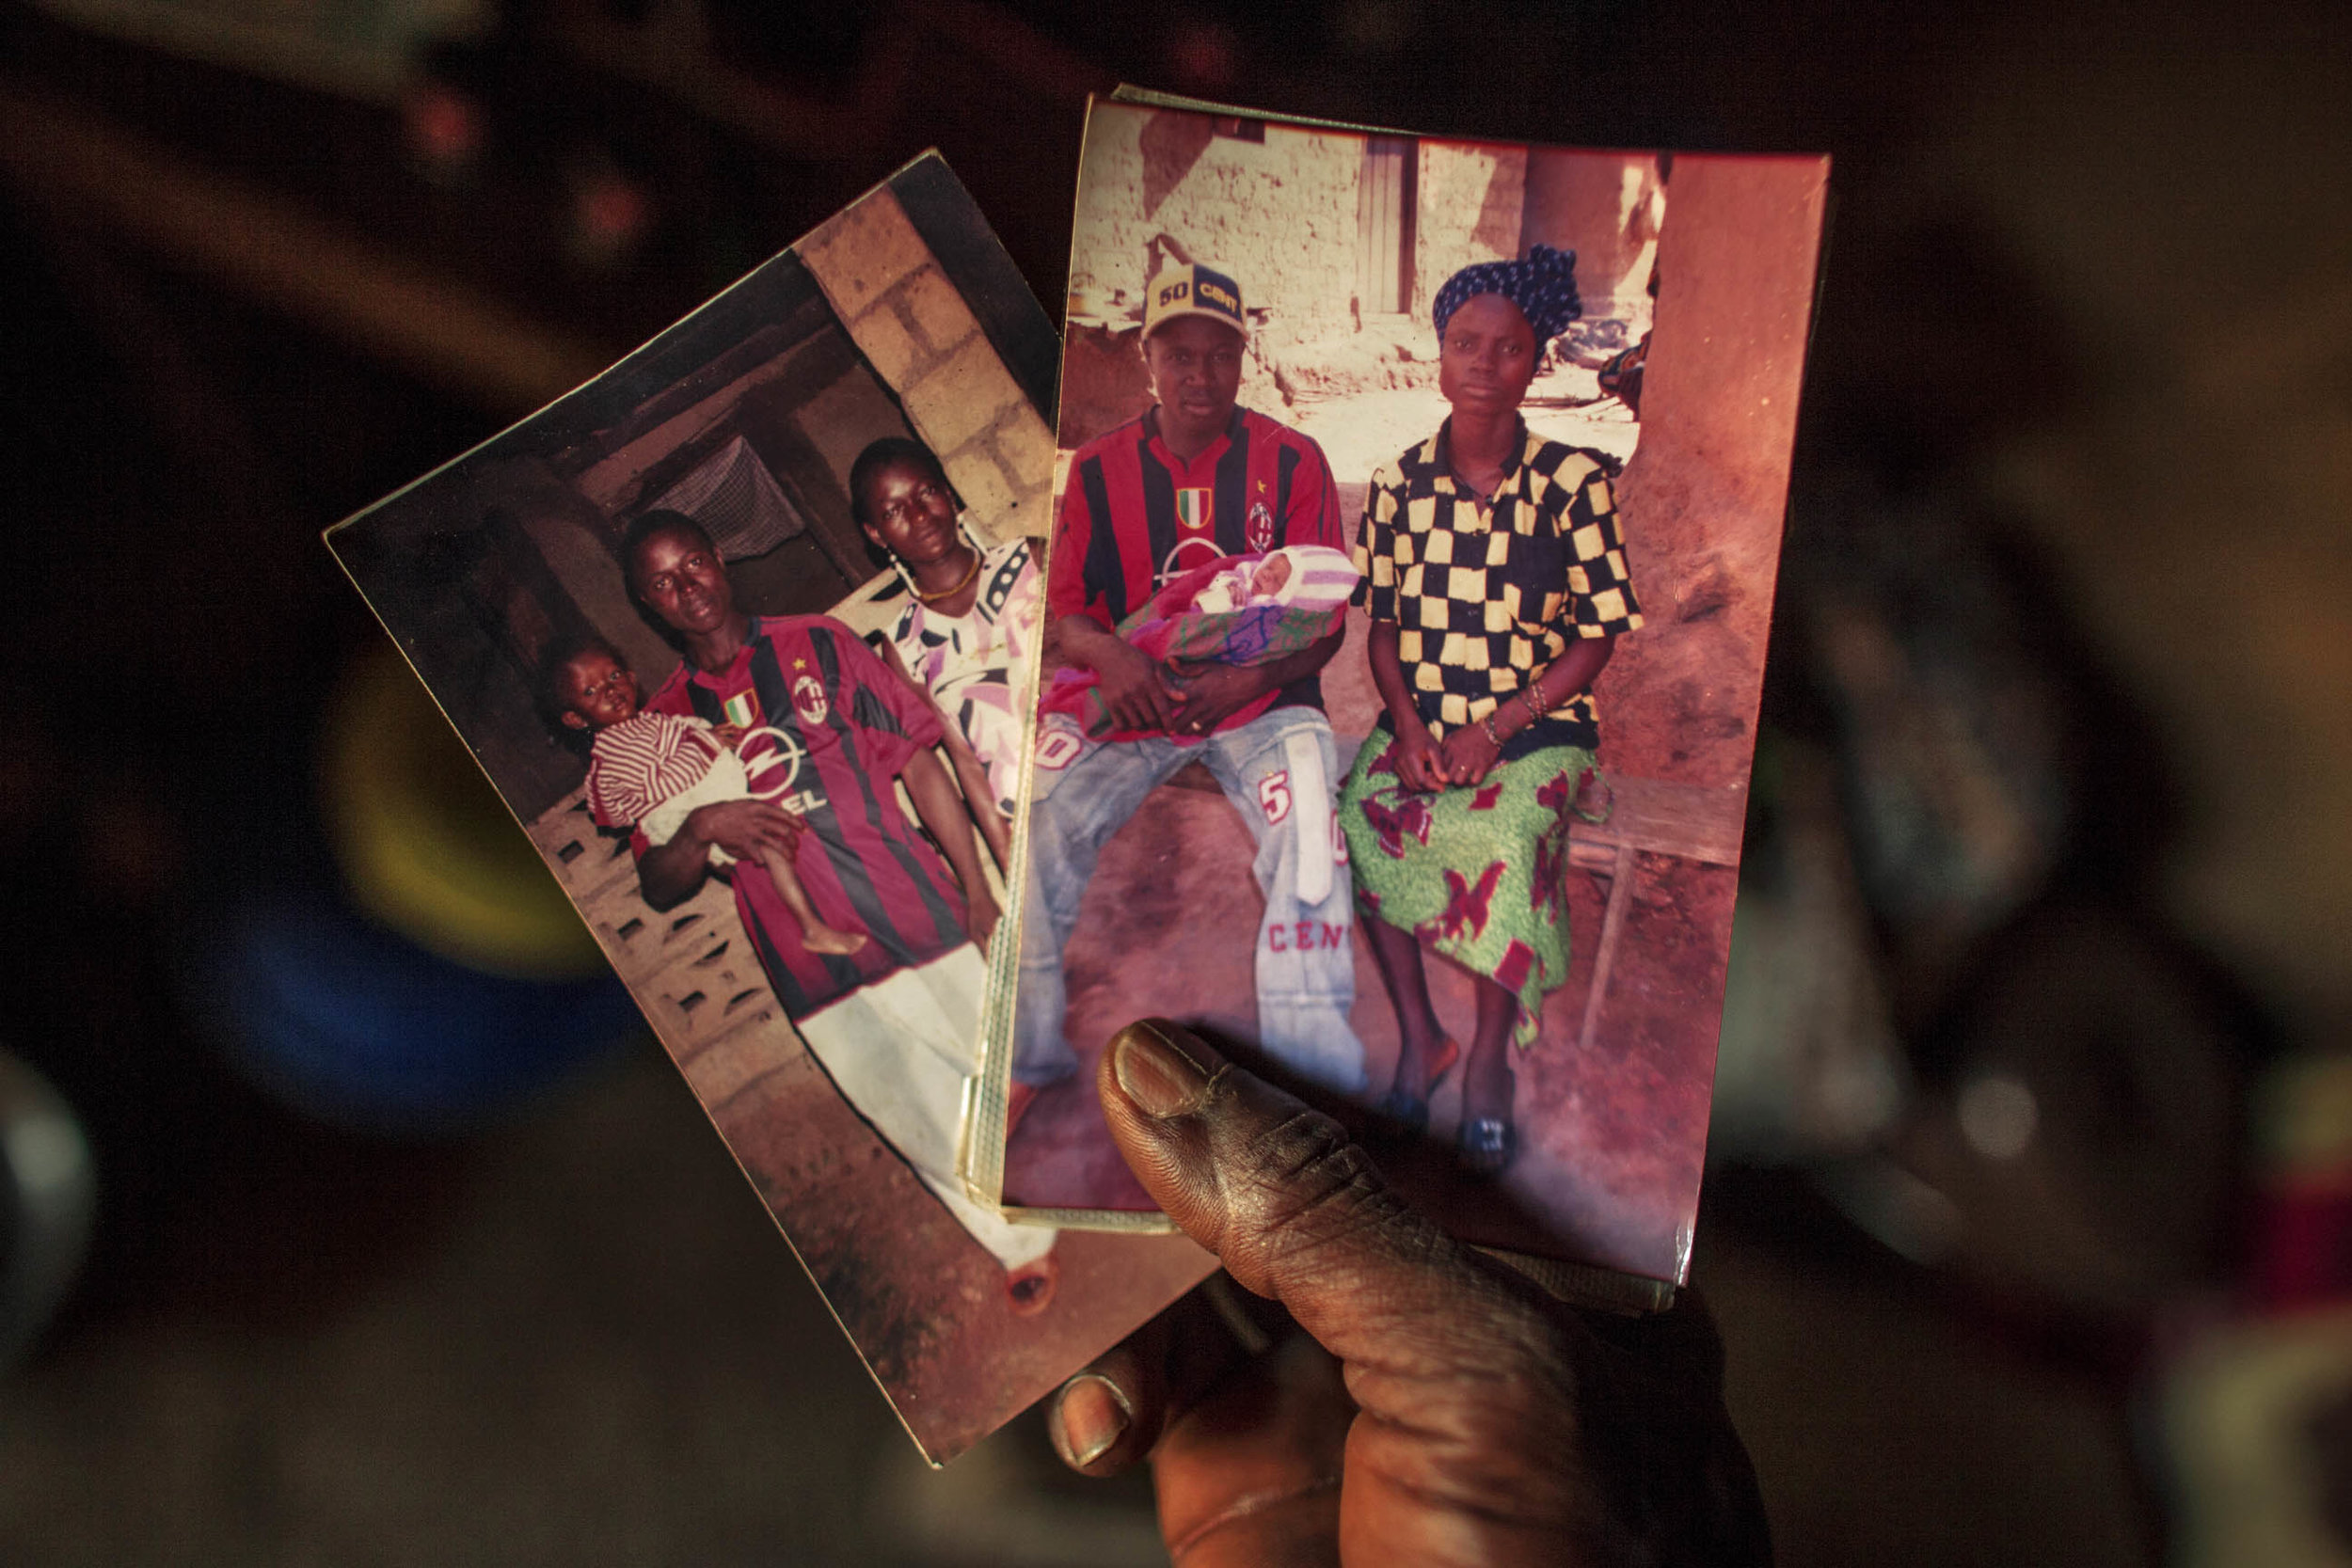 Etienne shows the few photographs he has of his late wife and son. (Photo by Pete Muller/Prime for National Geographic)